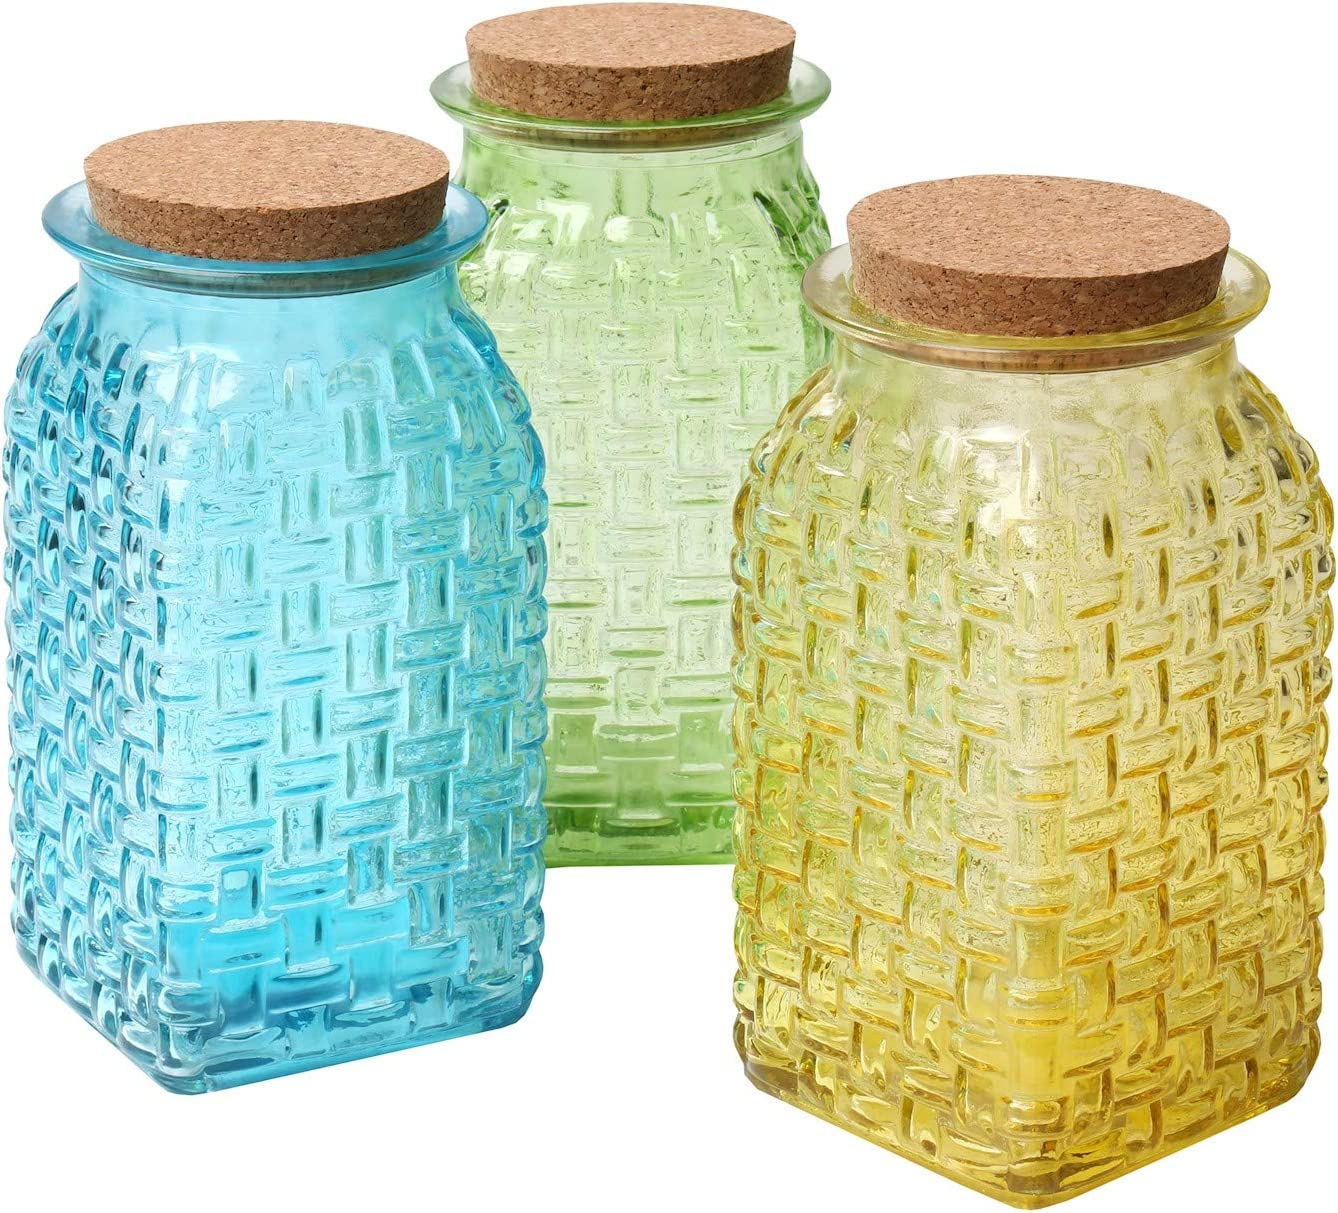 Art & Artifact 3-Piece Glass Basketweave Vase Set - Decorative Yellow, Green and Blue Jars with Cork Stopper Lids - Flower Holders, Storage Containers and Home Decor Accent